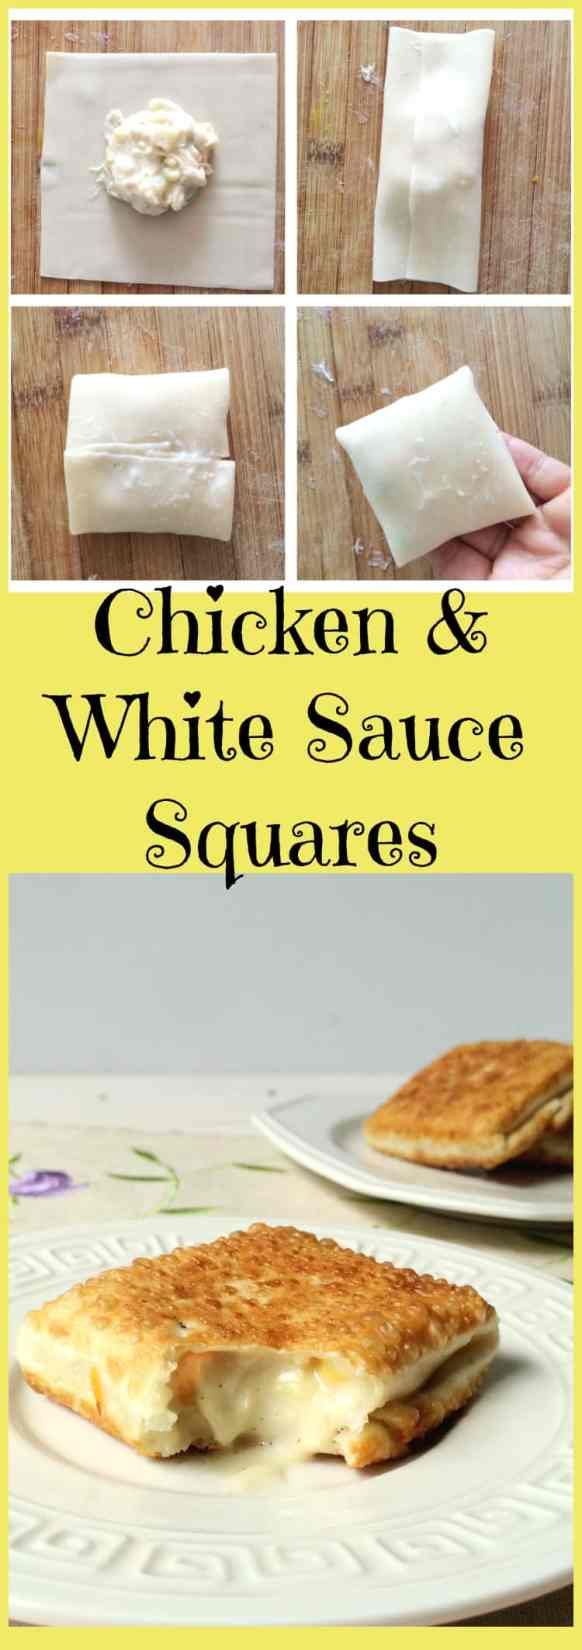 Chicken and white sauce squares